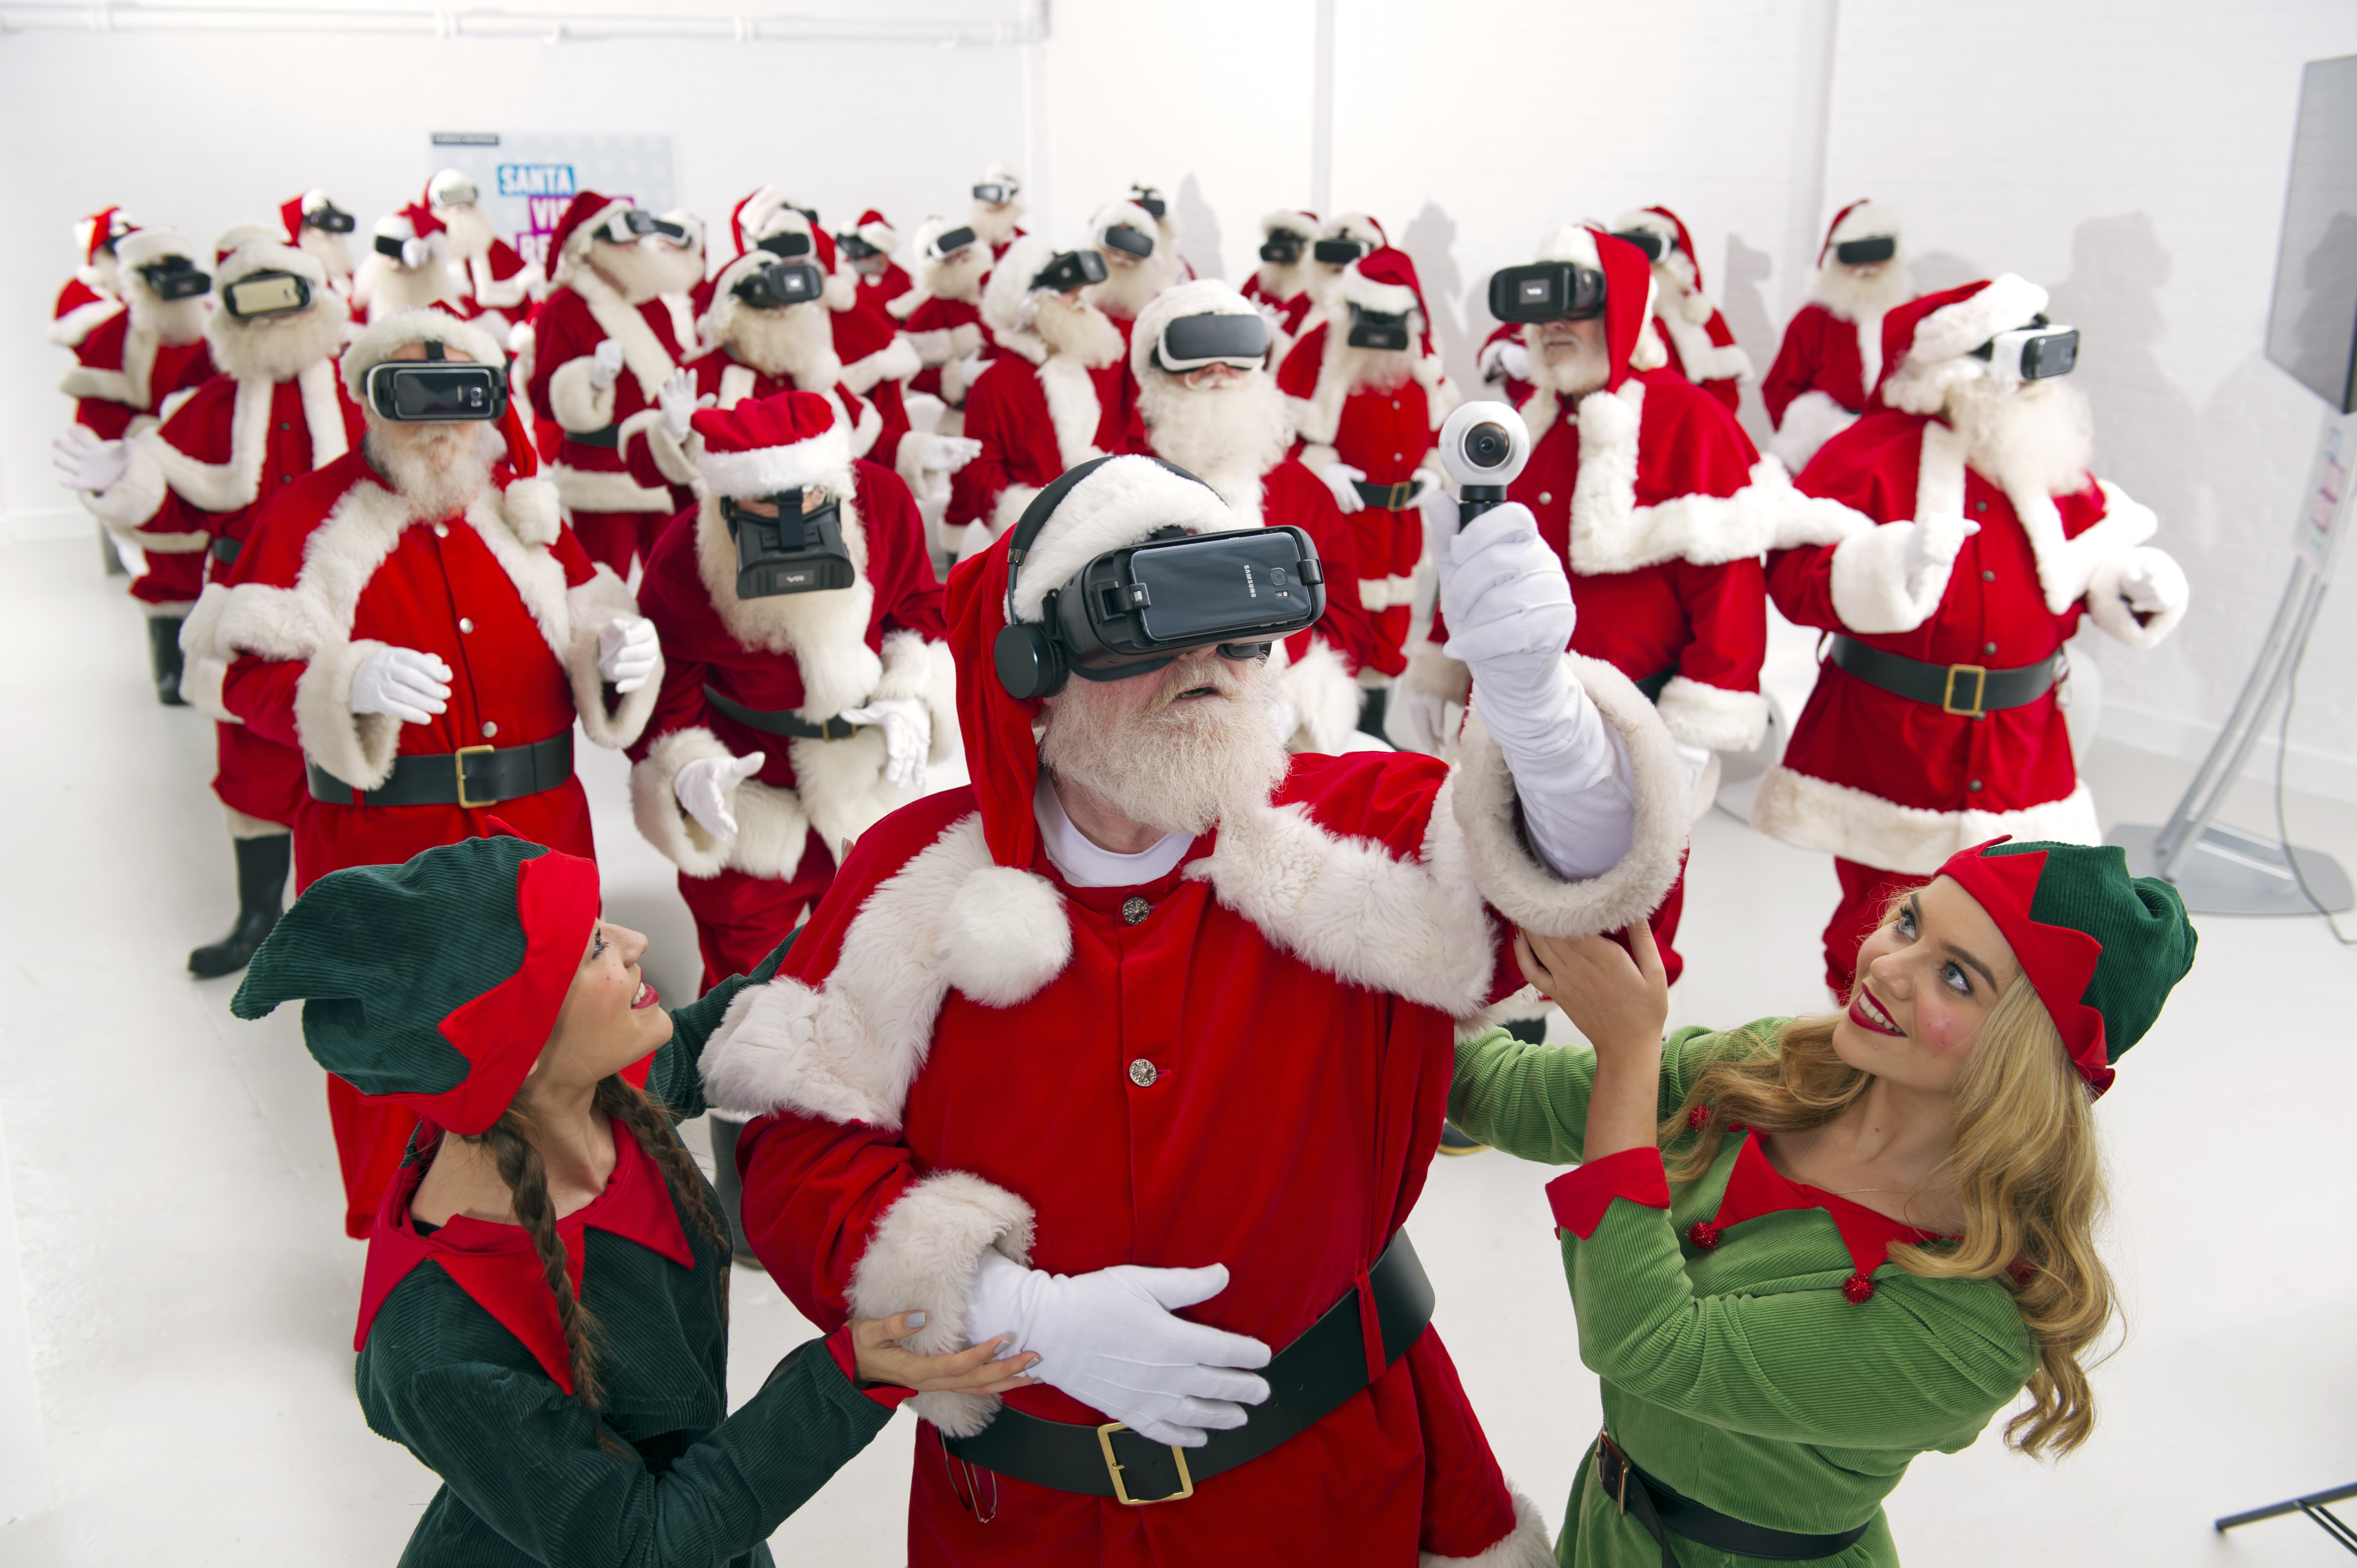 A red-suited Father Christmas wearing a virtual reality headset is guided by a pair of elves with a a group of Santas behind him.